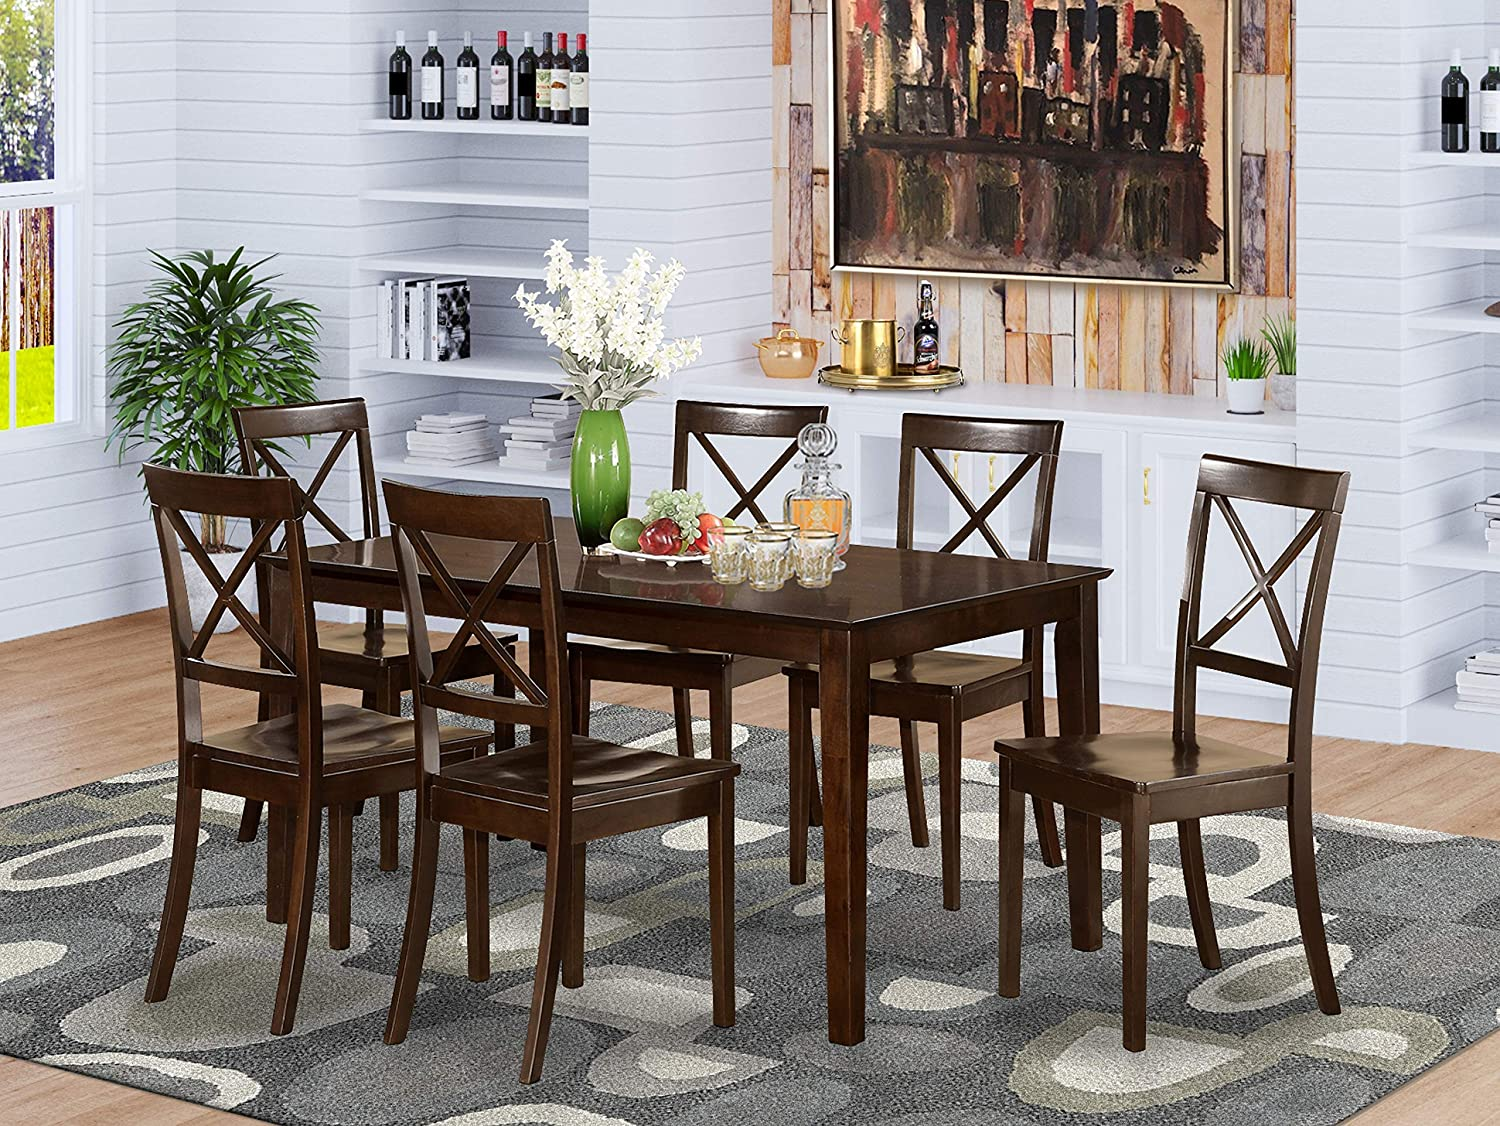 Amazon Com East West Furniture Dining Set 7 Pc Wooden Modern Dining Chairs Seat Cappuccino Finish Small Rectangular Dining Table And Body Kitchen Dining